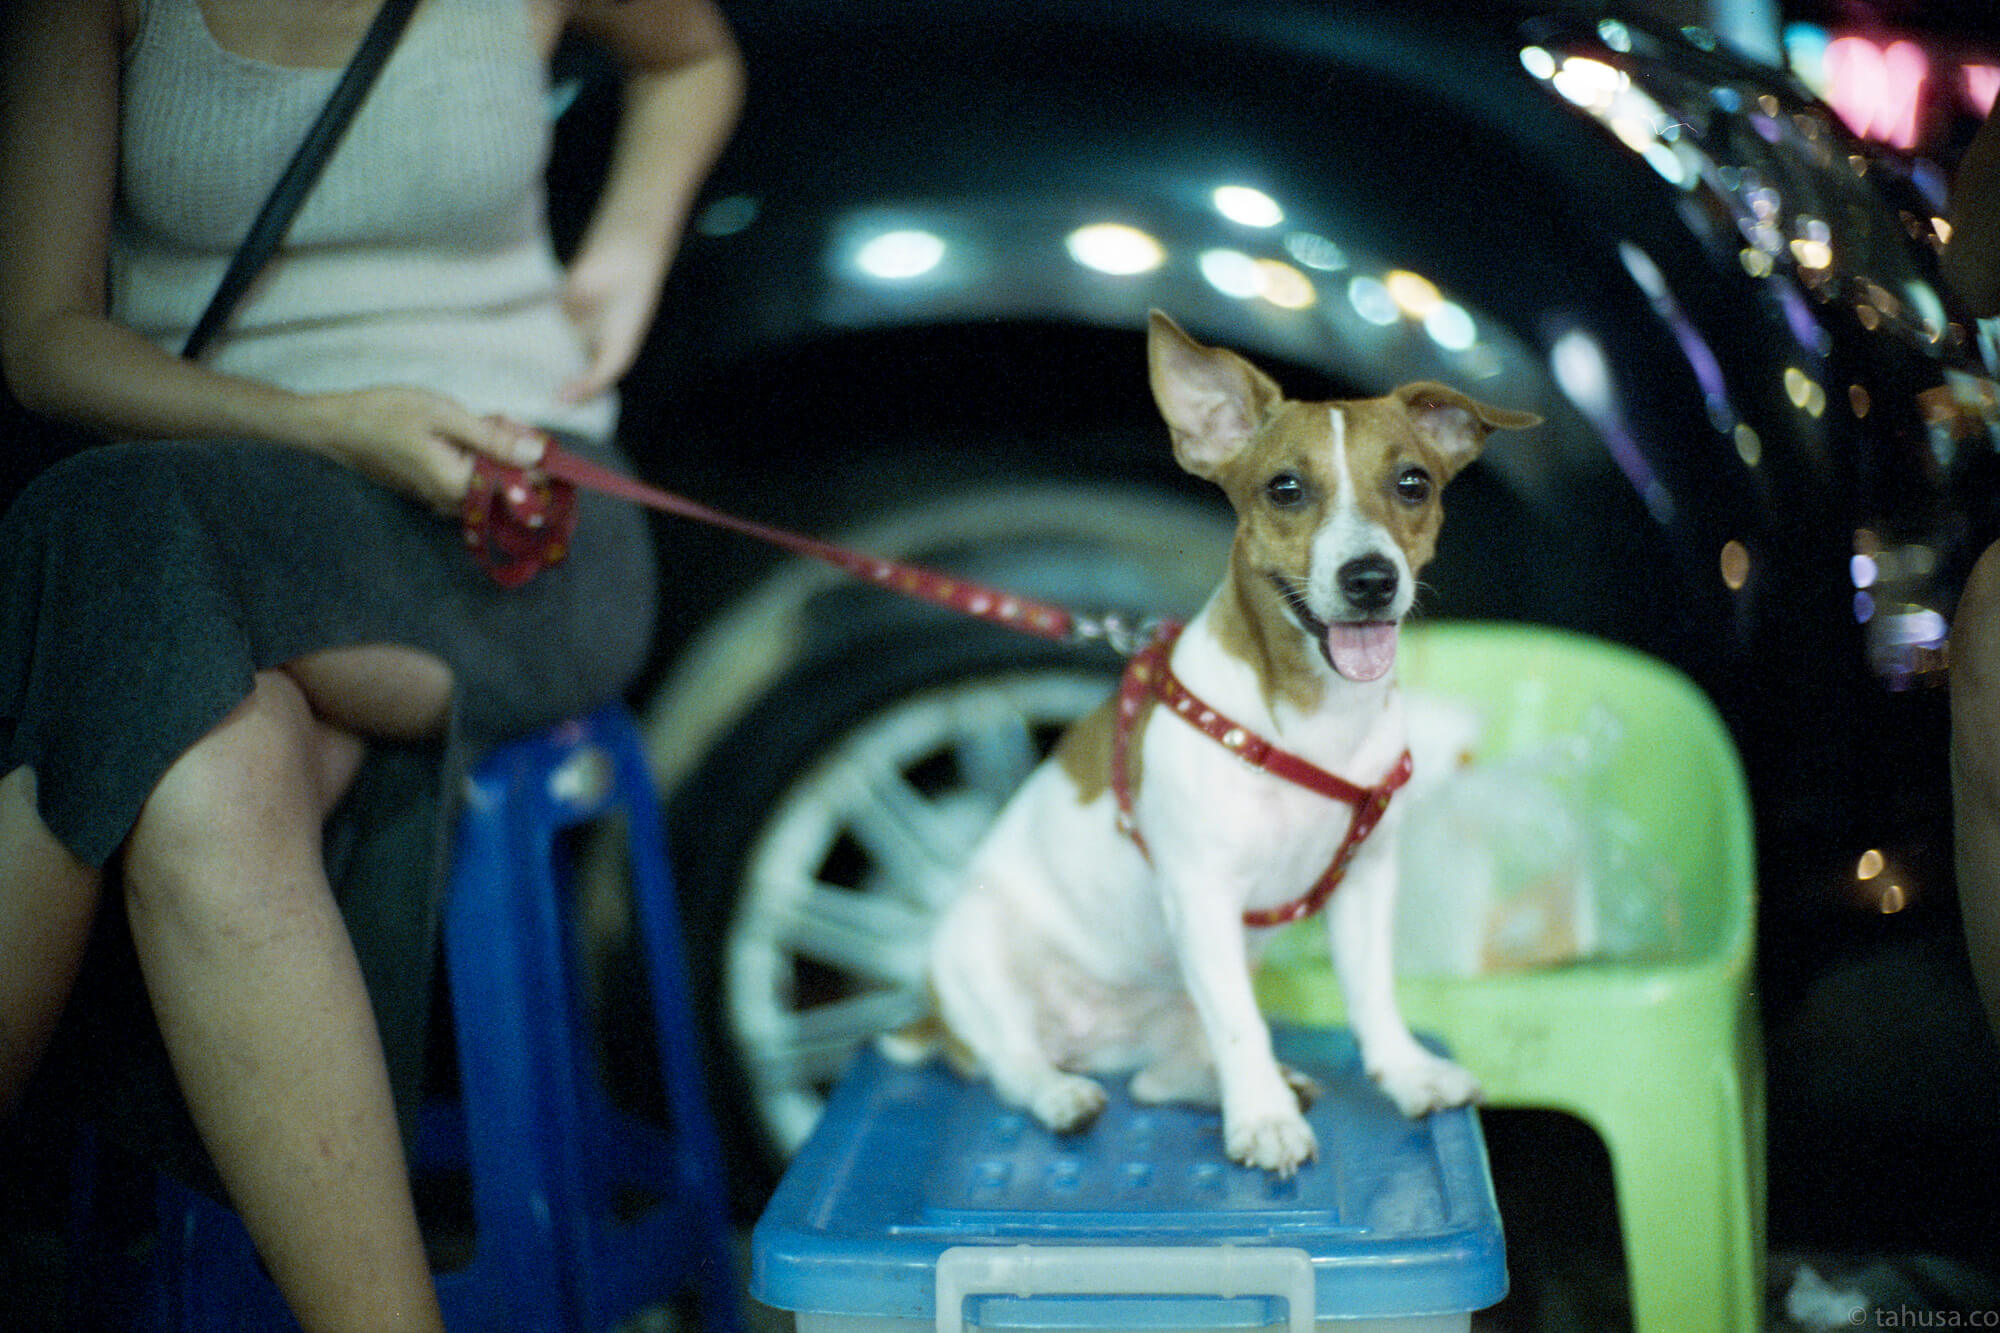 dog-with-its-owner-pattaya-thailand-HK-Cinestill-800T-800-iso800-Tungsten-film-movie-kodak-with-Noctilux-50mm-f1-f1.0-e58-v1-large-aperture-bokeh-grain-pushed-street-snap